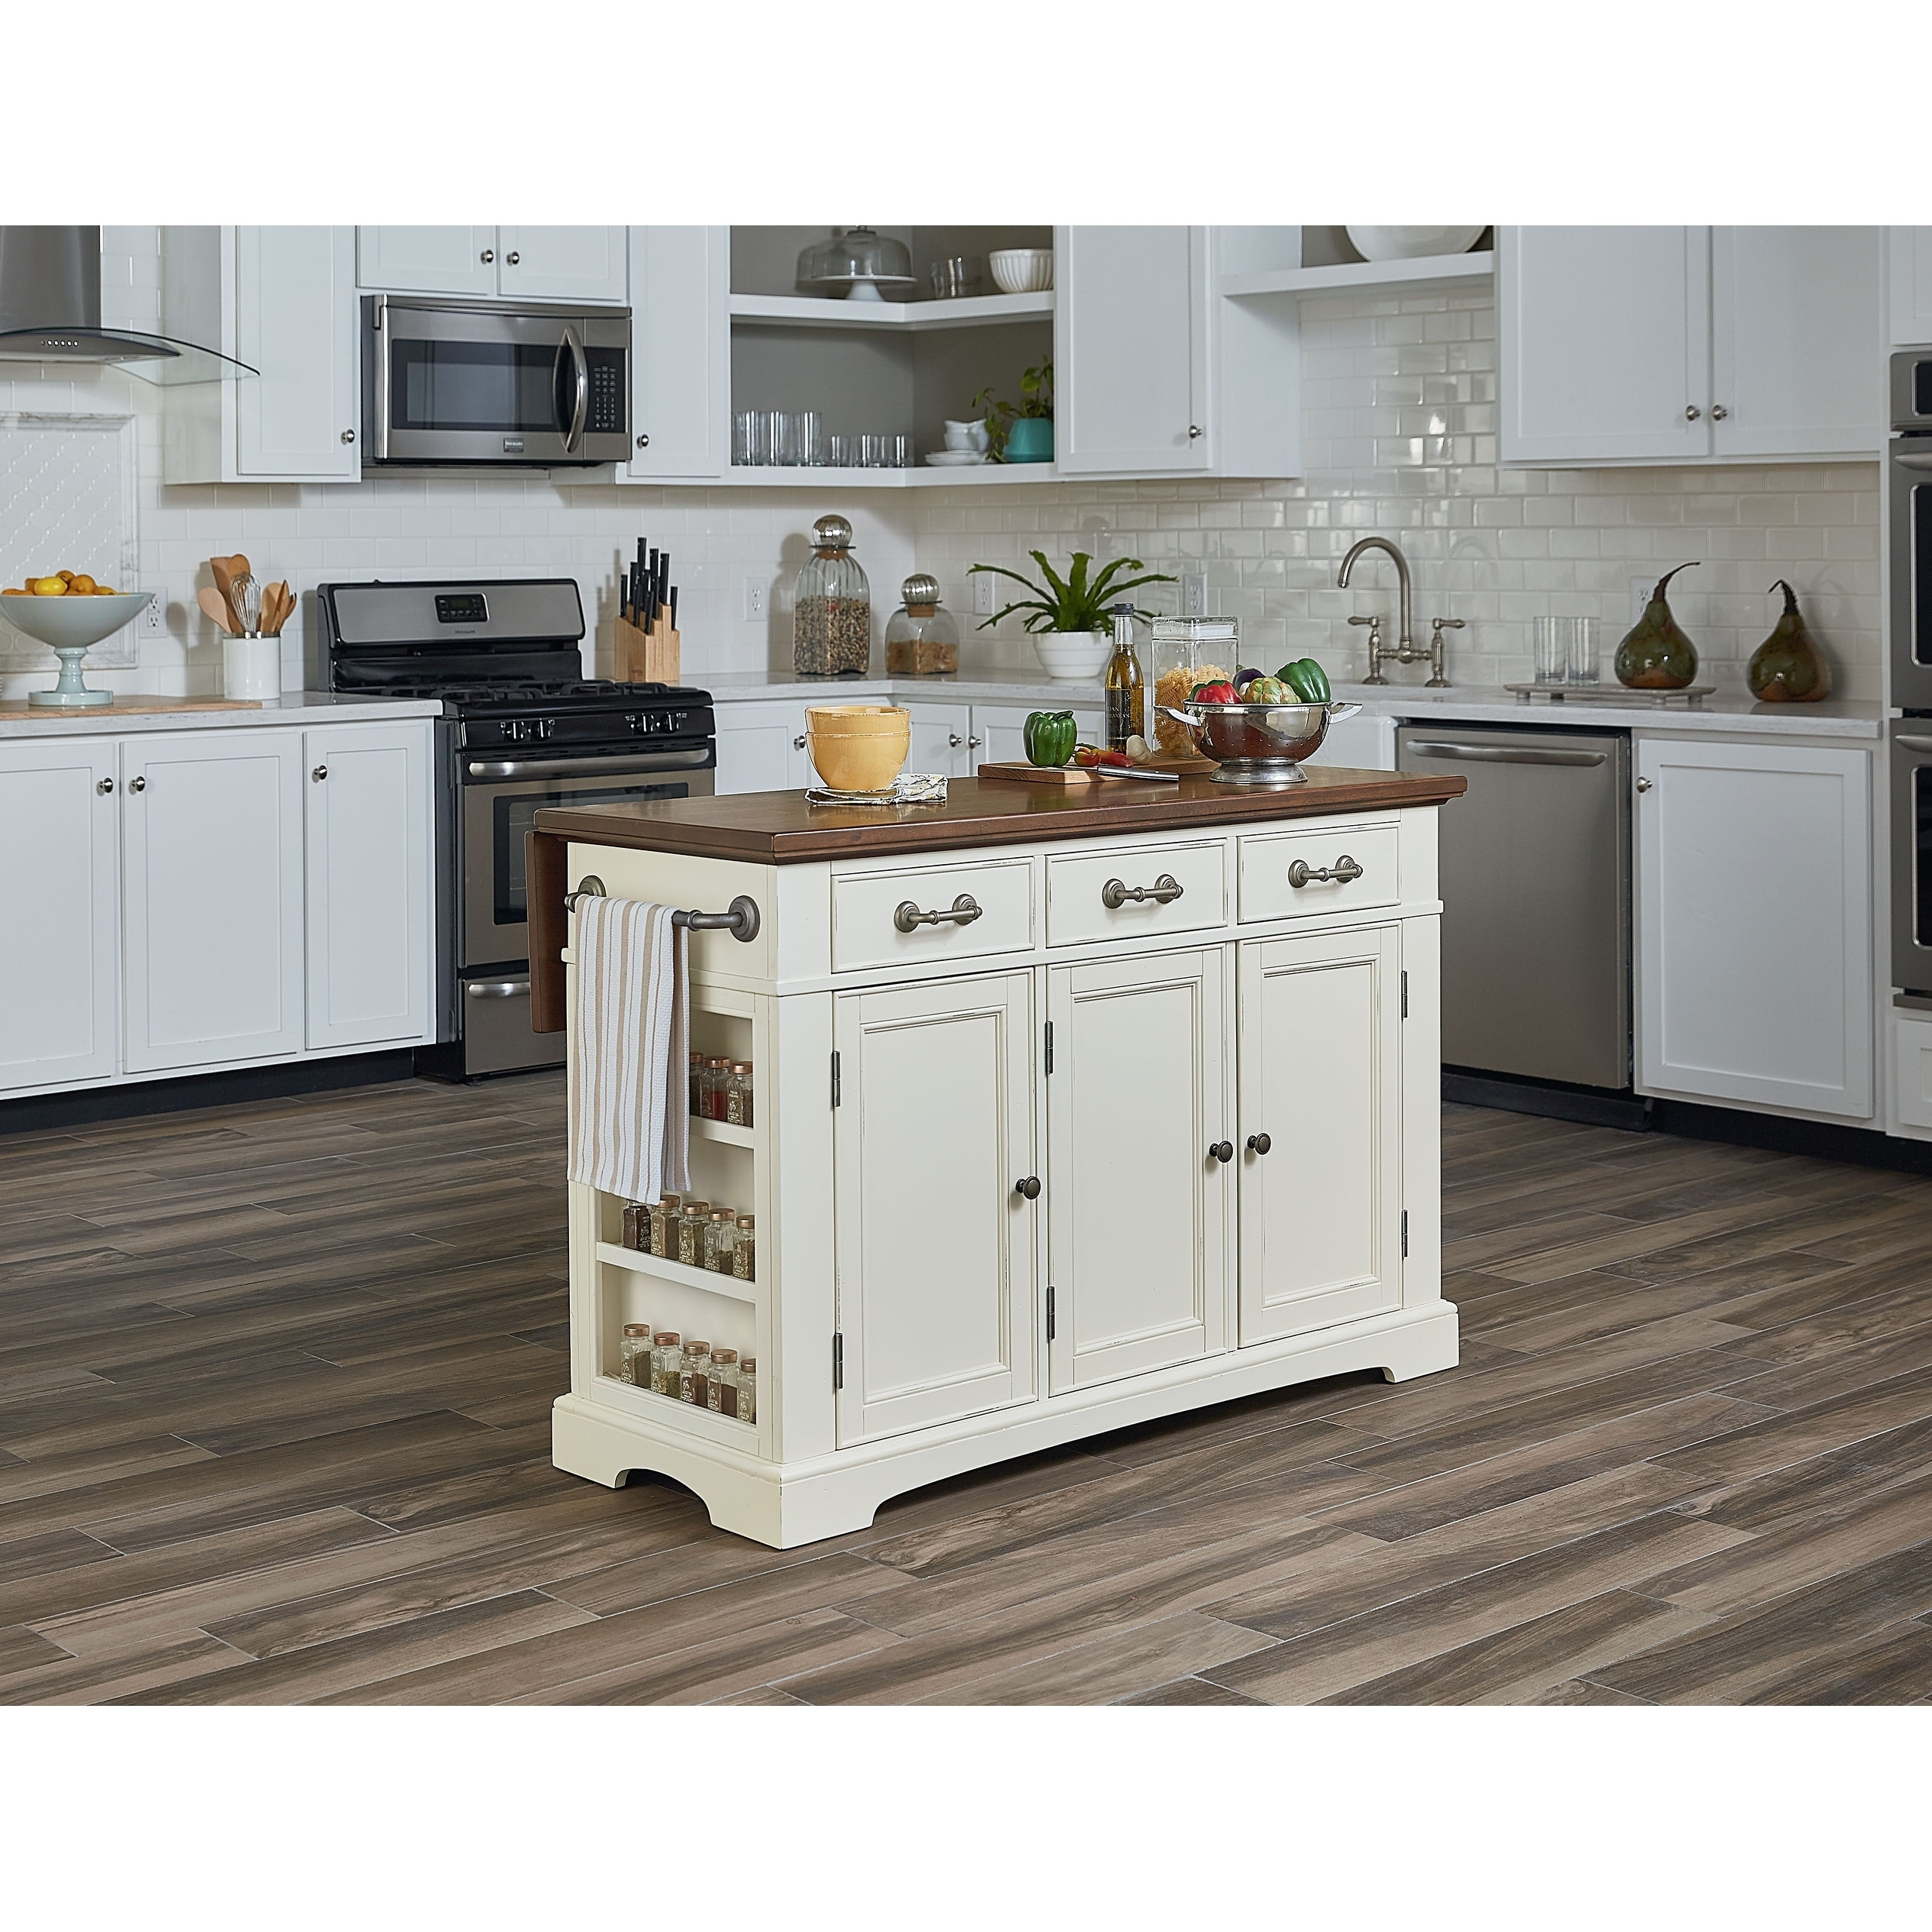 large kitchen island 1950 table and chairs shop osp home furnishings country with white finish vintage oak top n a